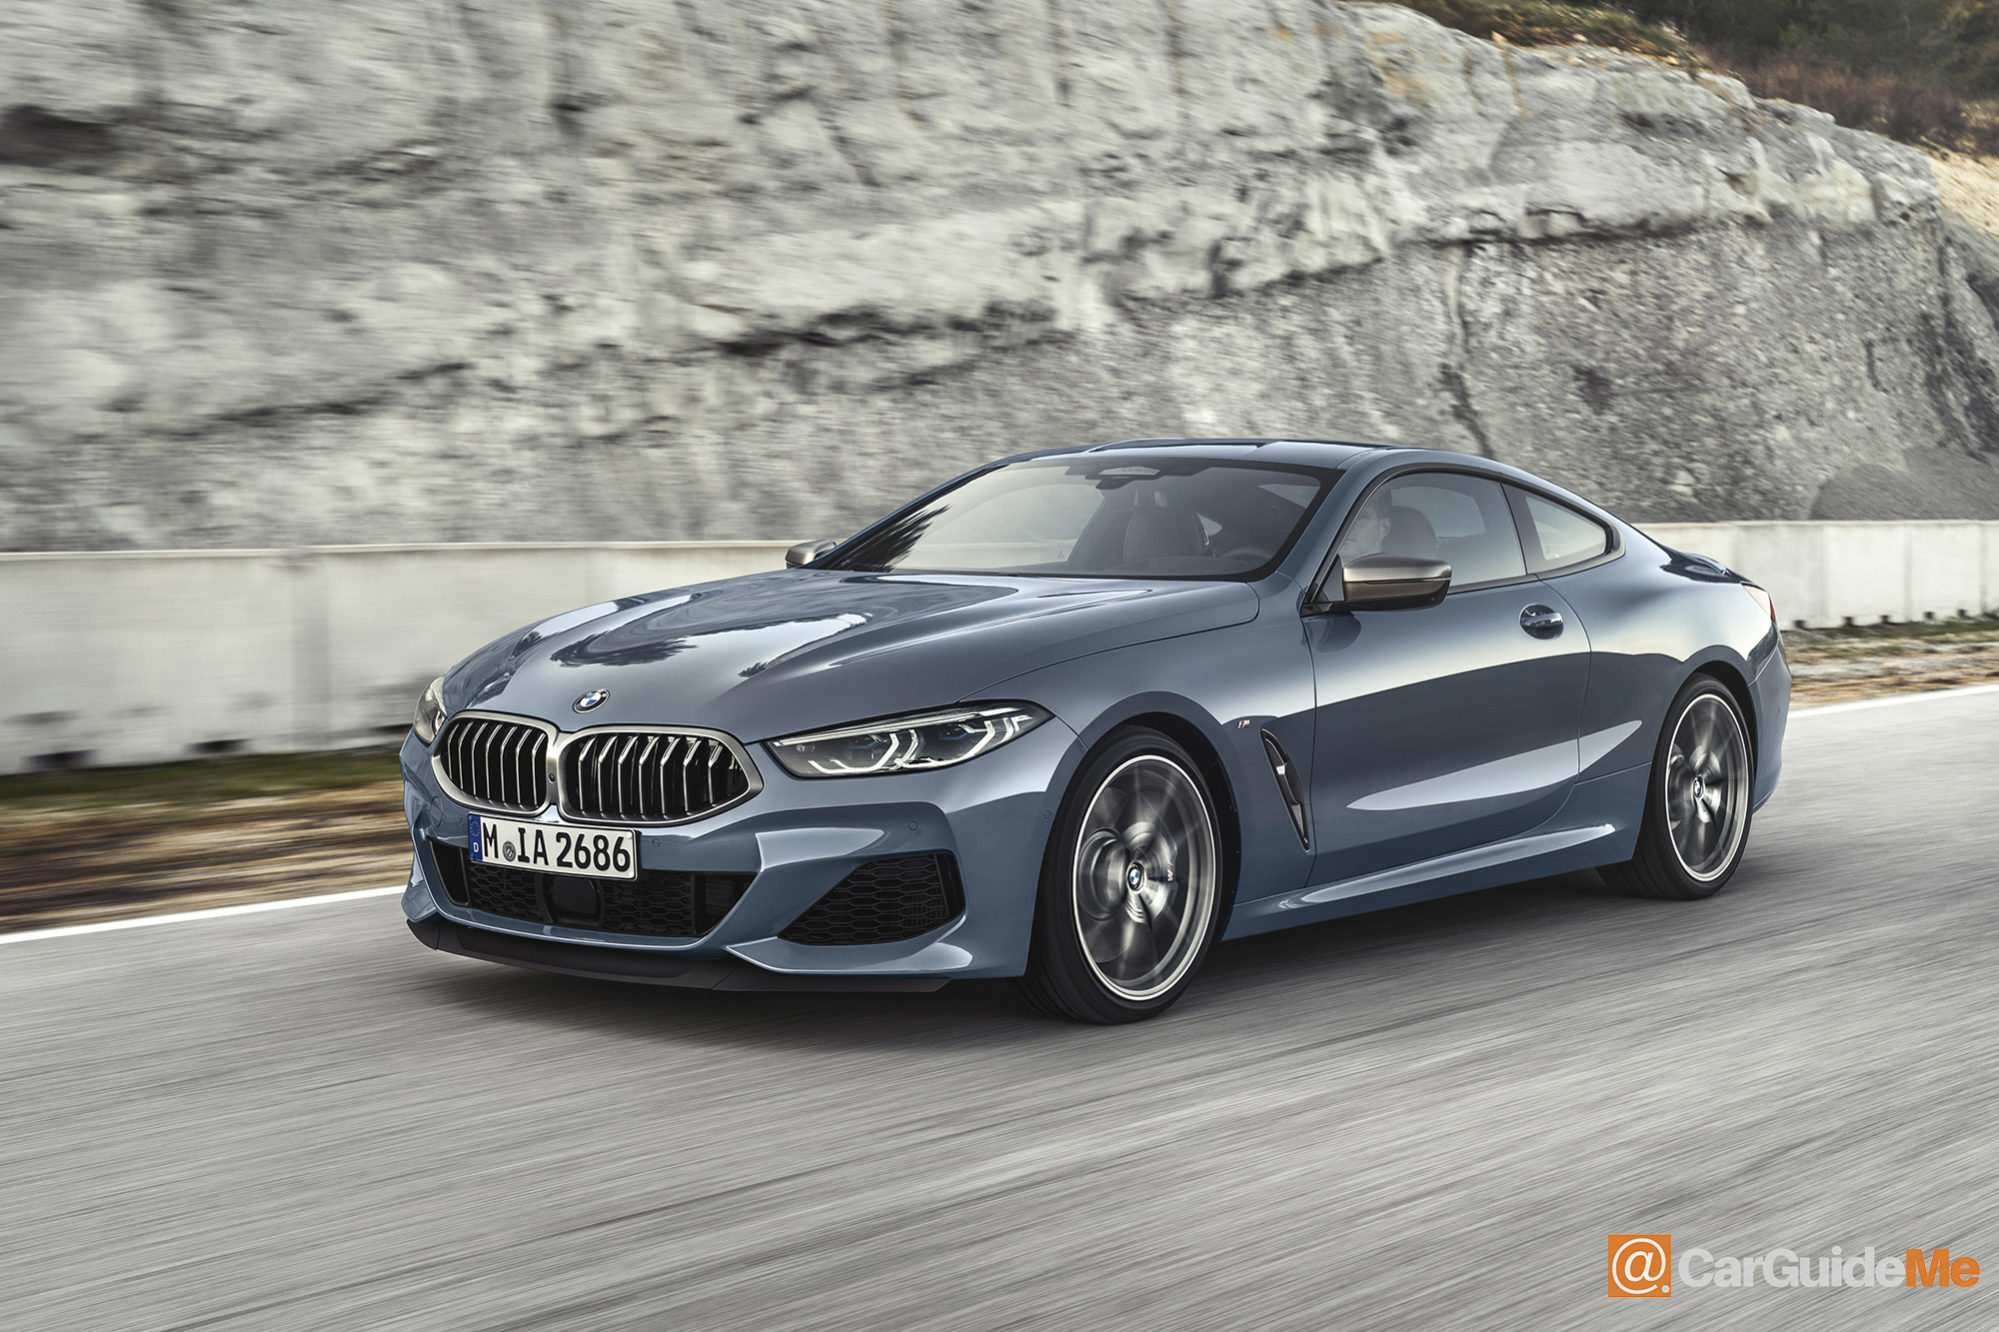 50 The Best 2020 Bmw 850I Specs And Review